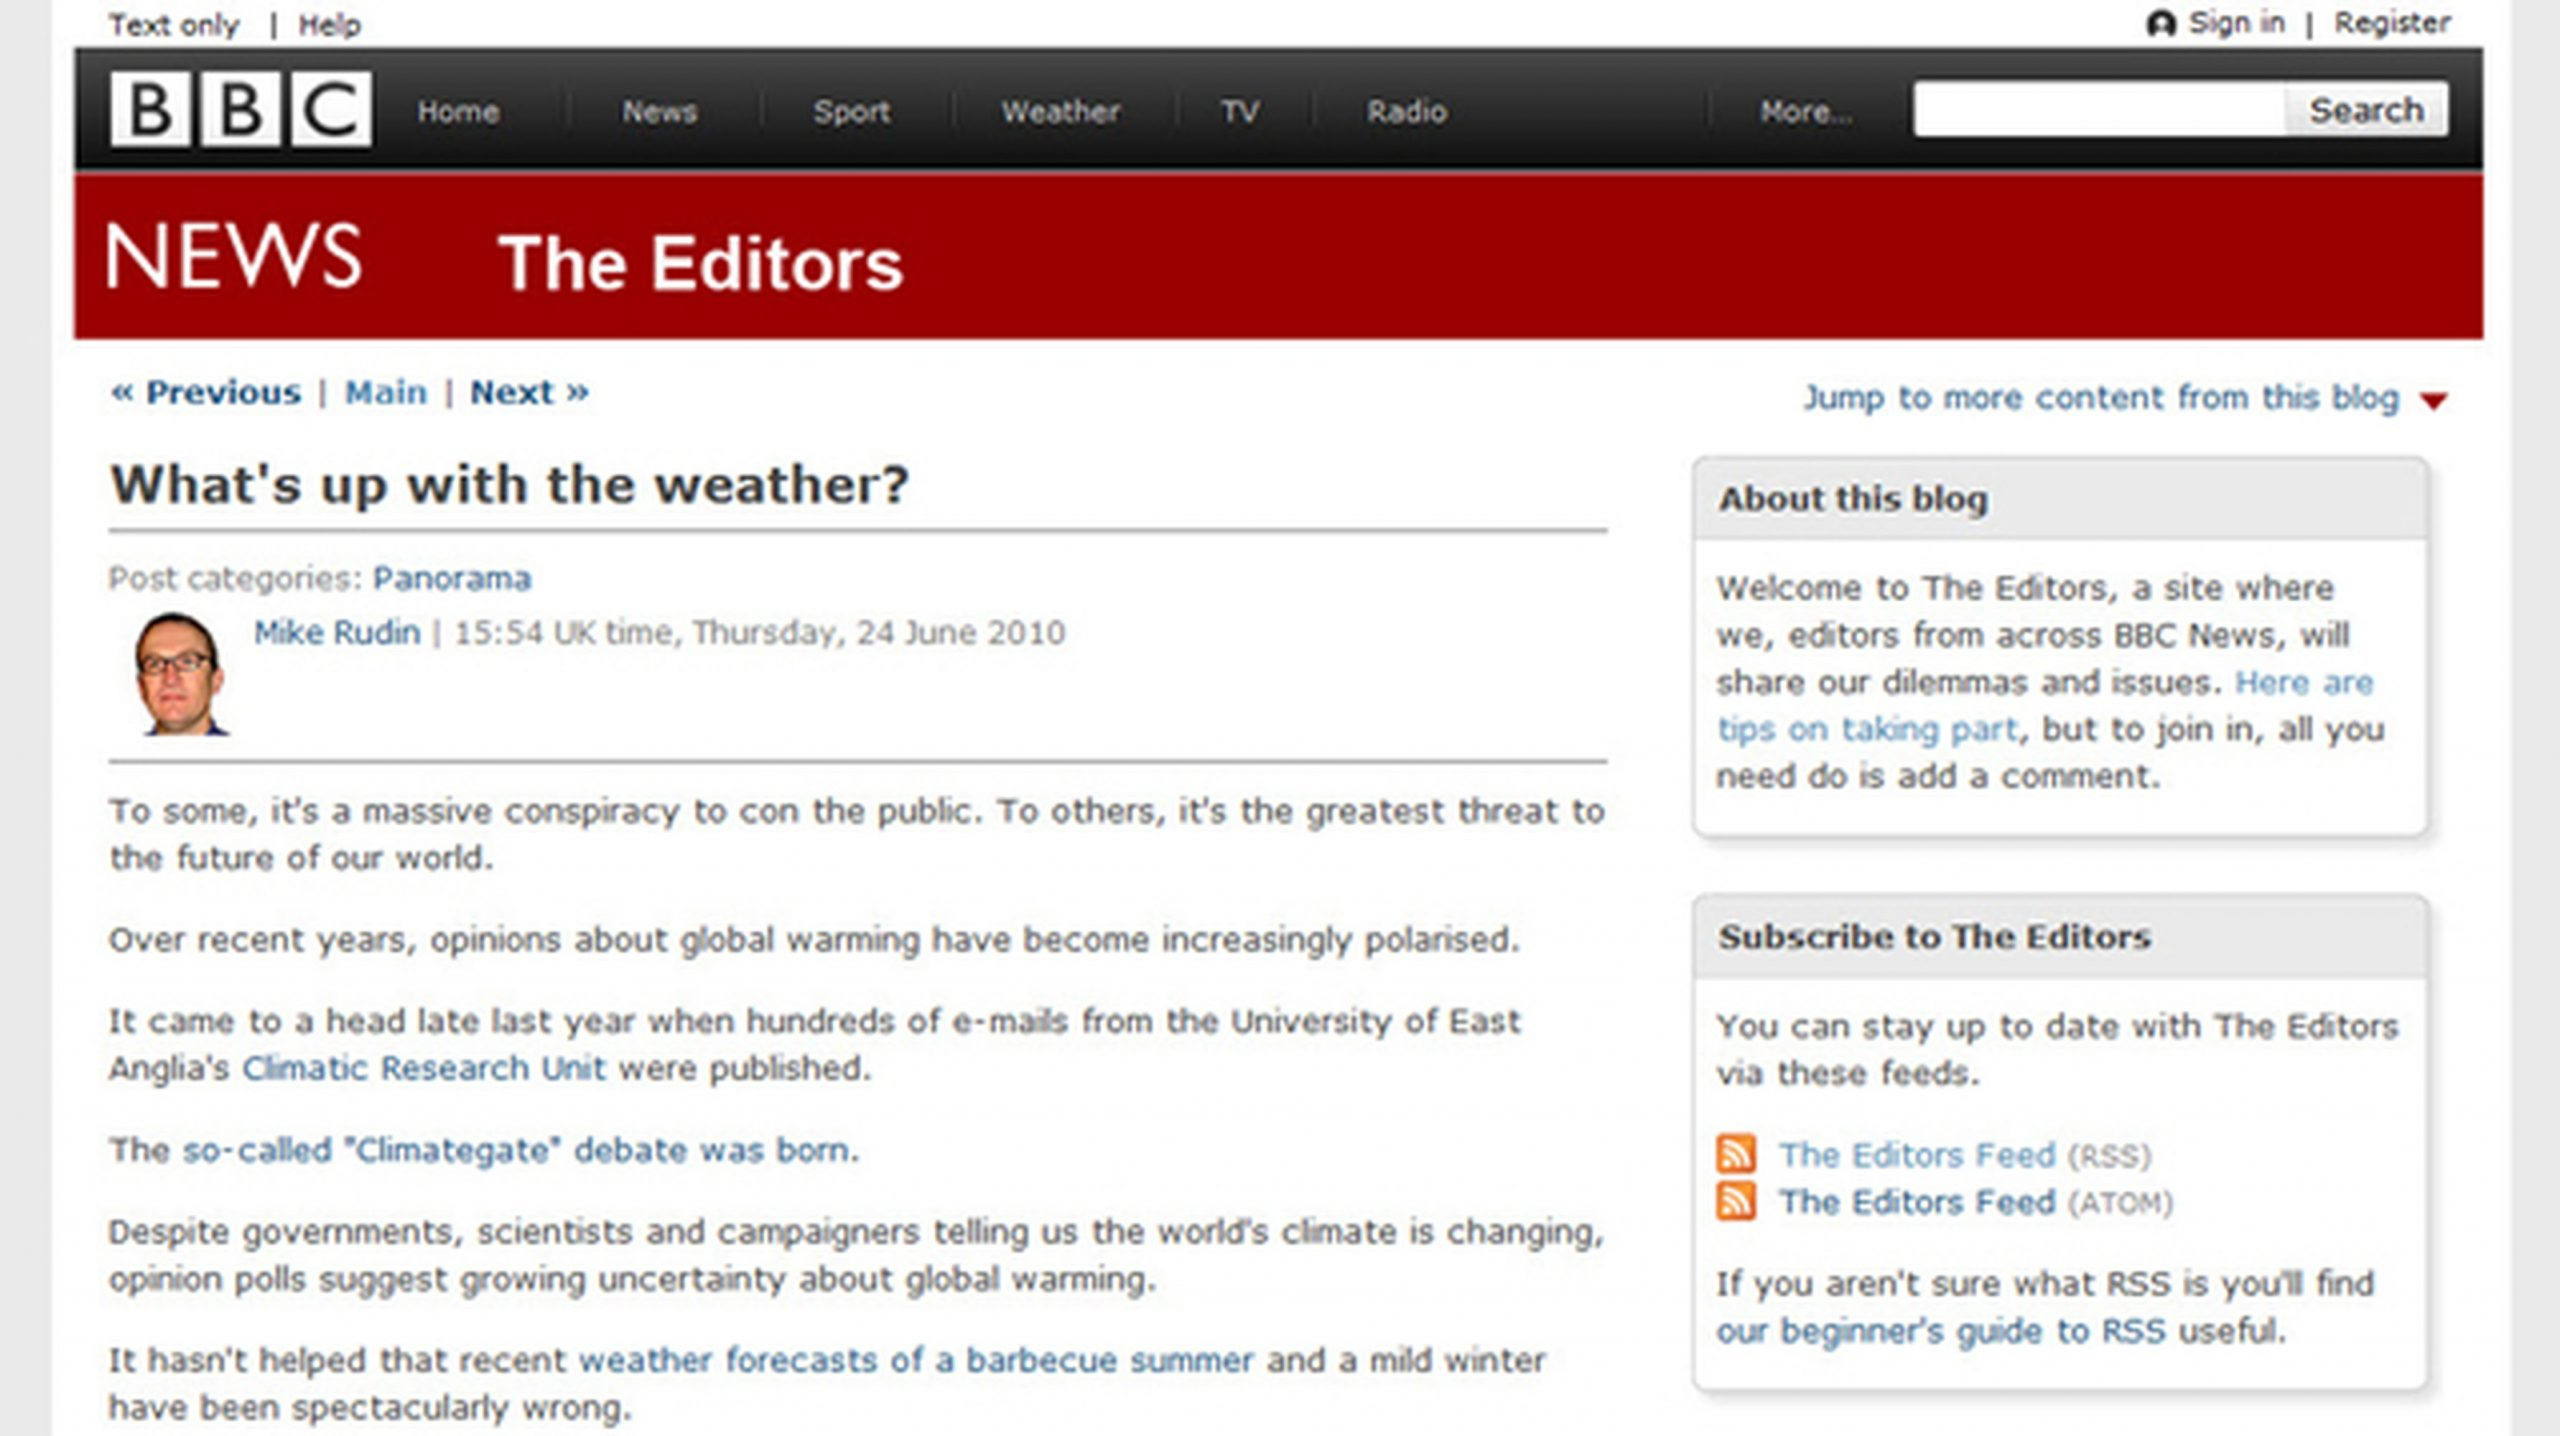 BBC's The Editors Blog: Bring Readers Into the Process